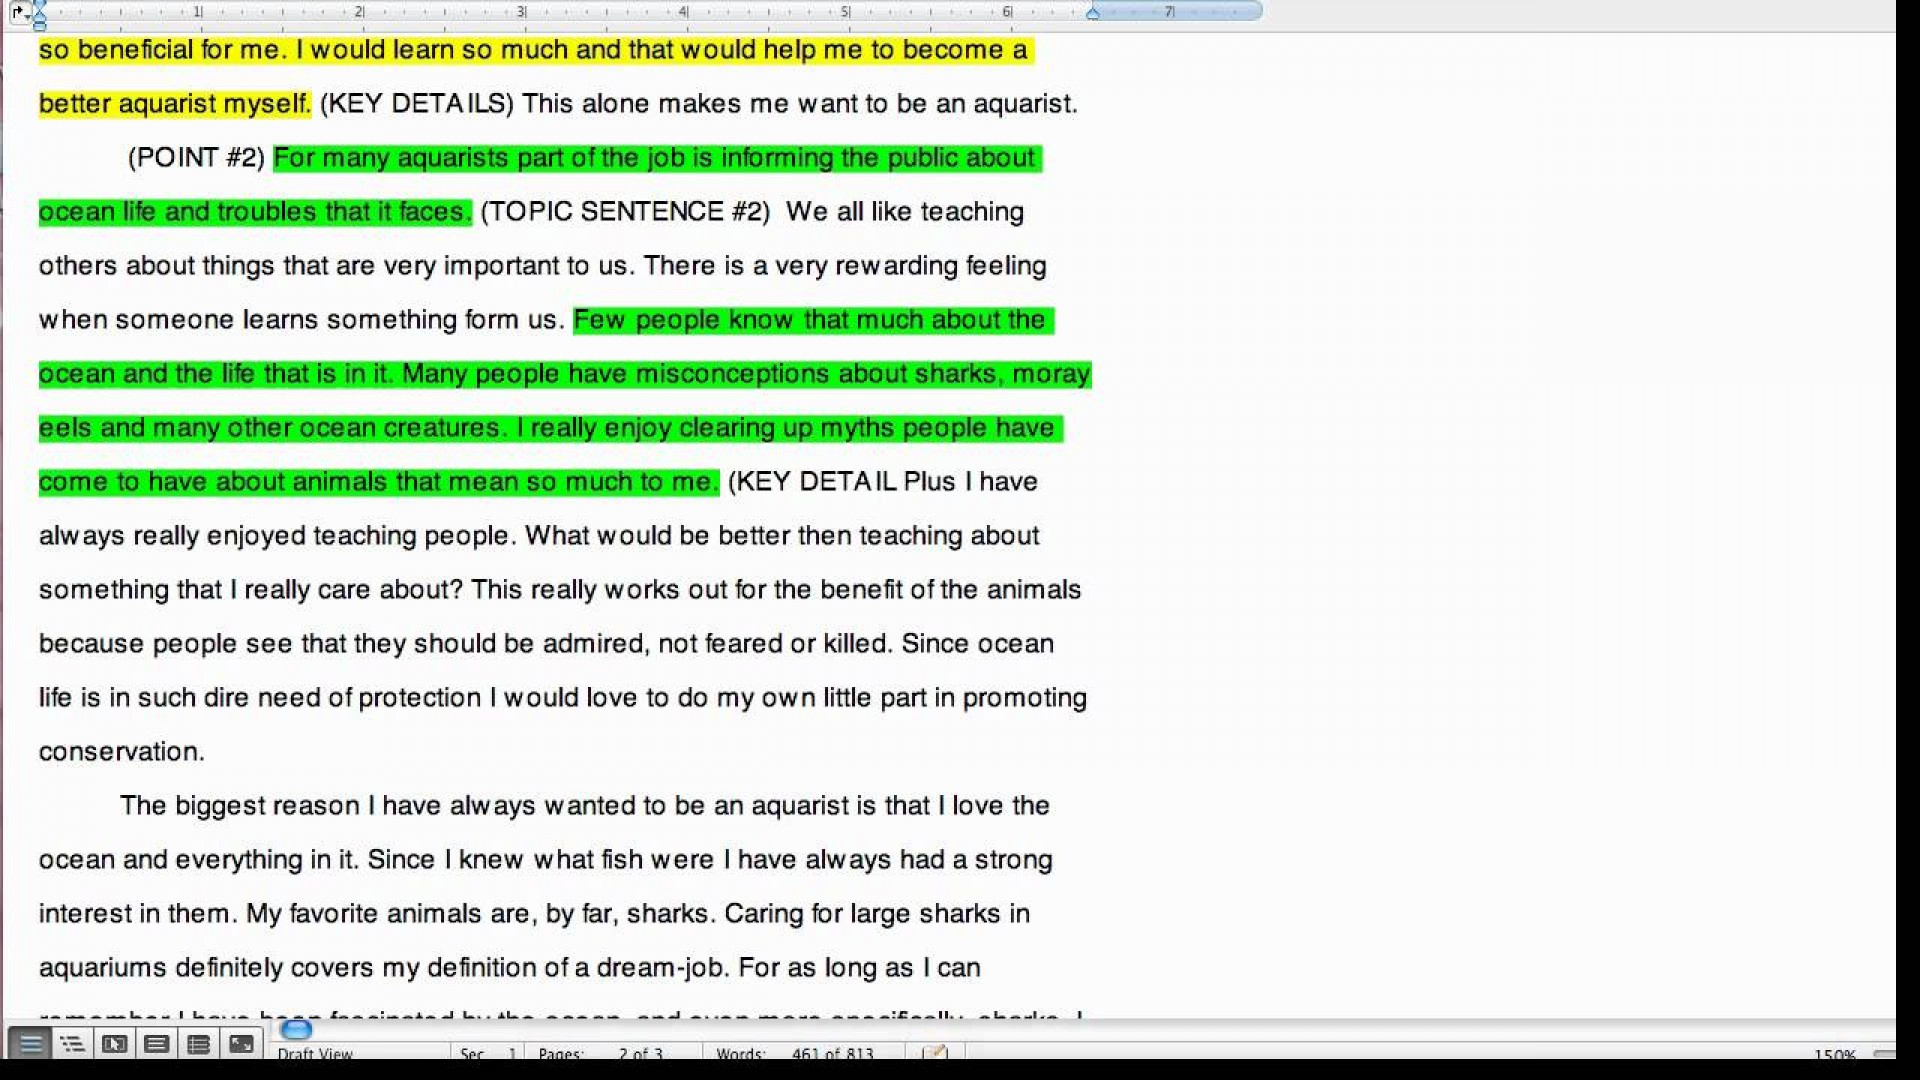 007 Essay Example Maxresdefault Cause And Impressive Effect Examples On Stress For Middle School Free 1920